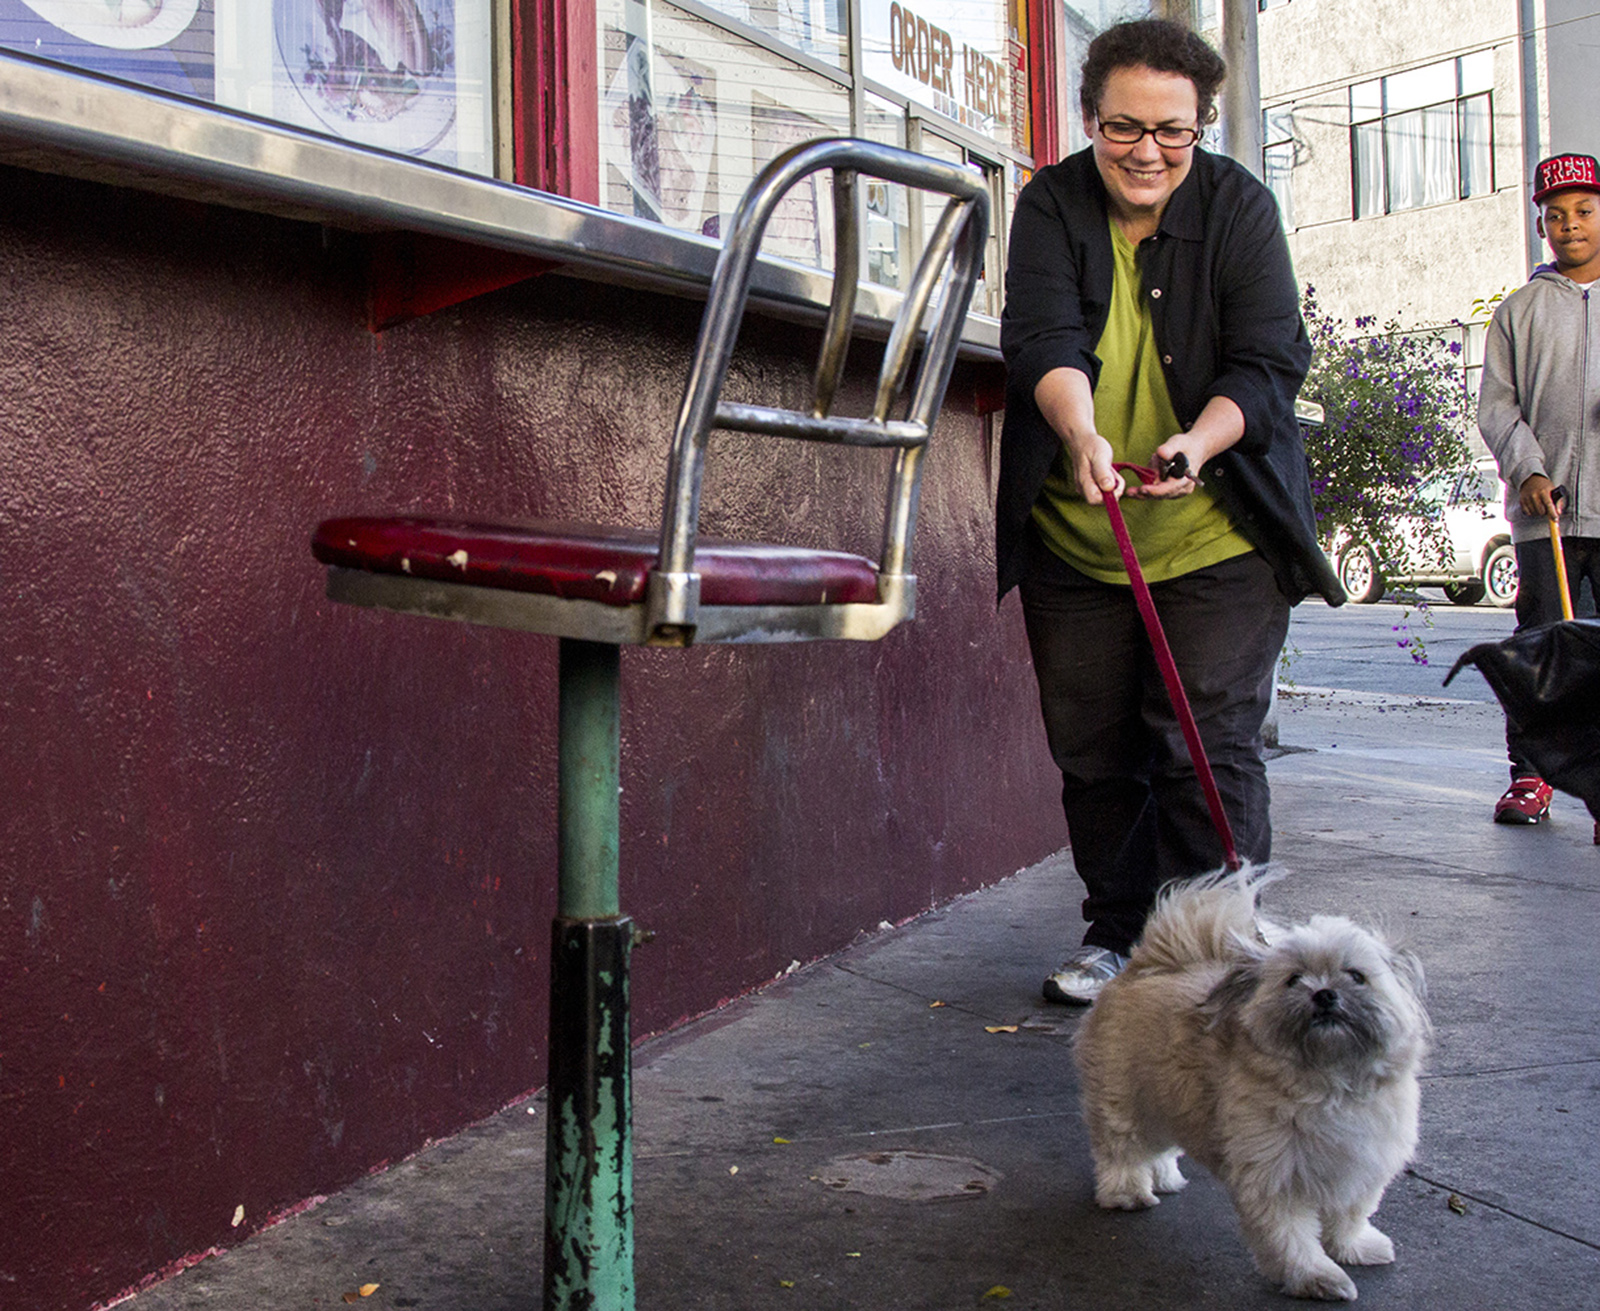 A lady tries to restrain her very happy puppy dog on a red leash.